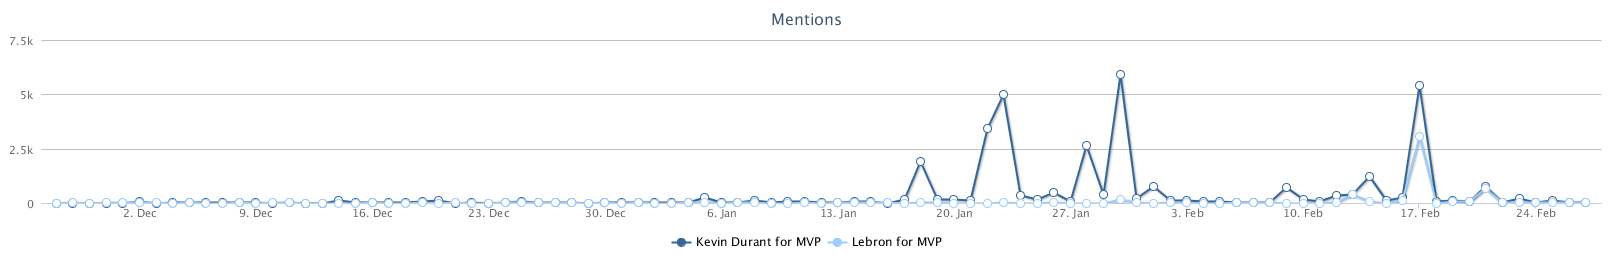 Timeline_Mentions_MVP.png